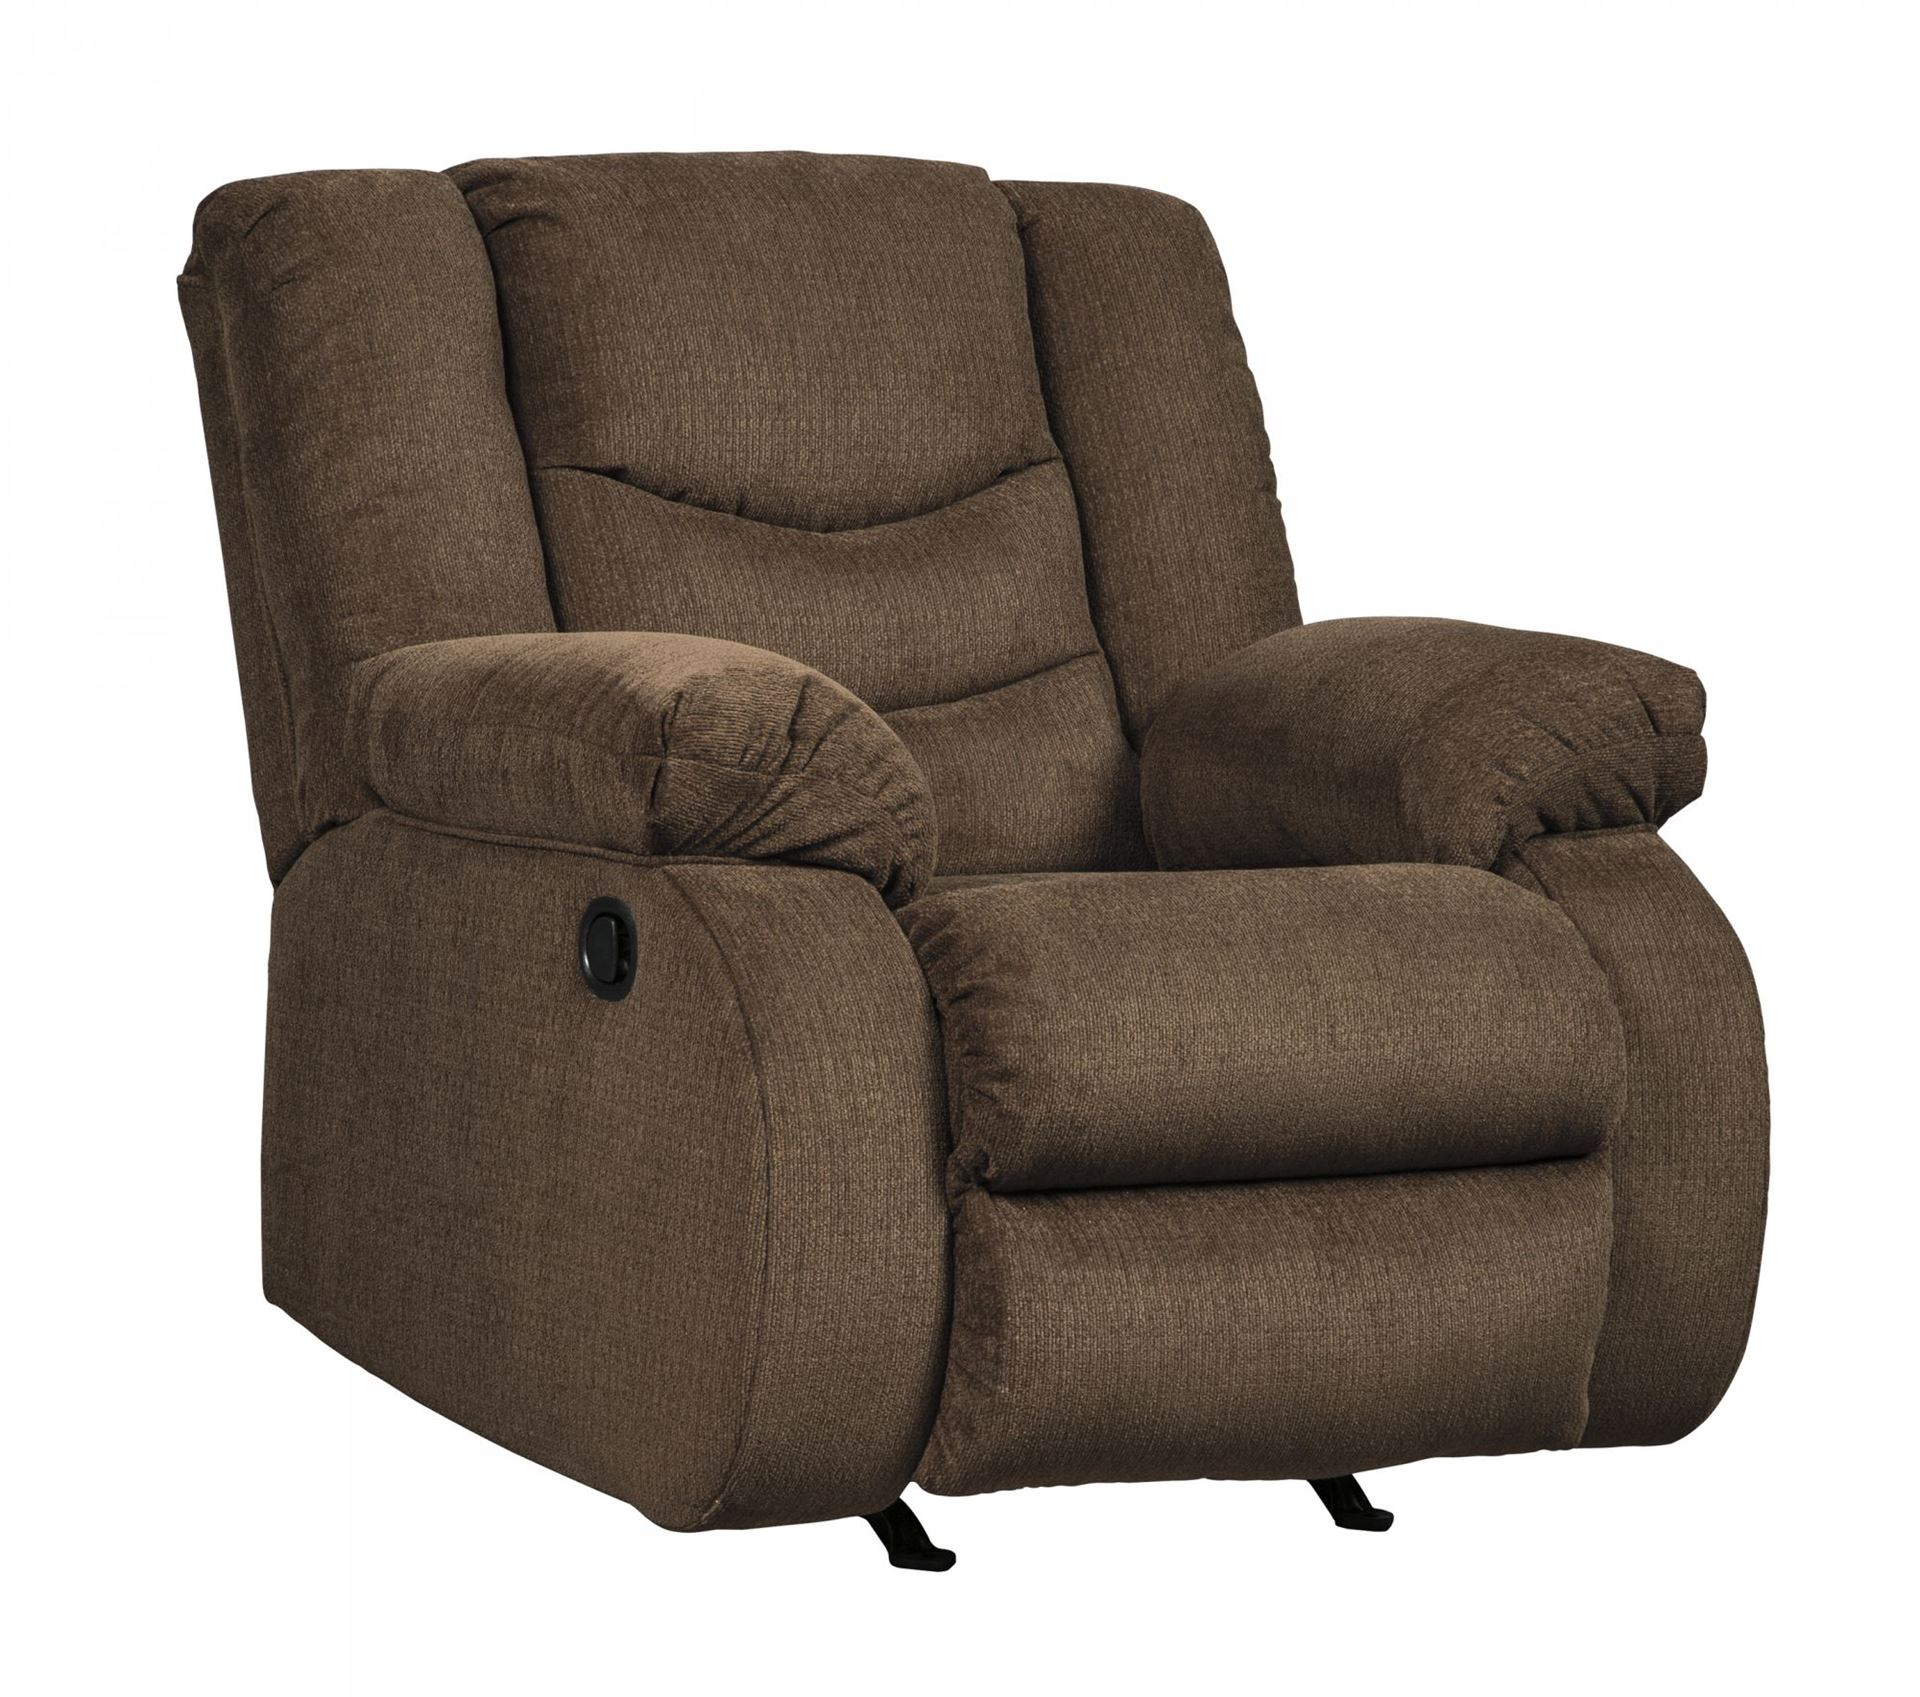 Picture of Tulen Chocolate Rocker Recliner